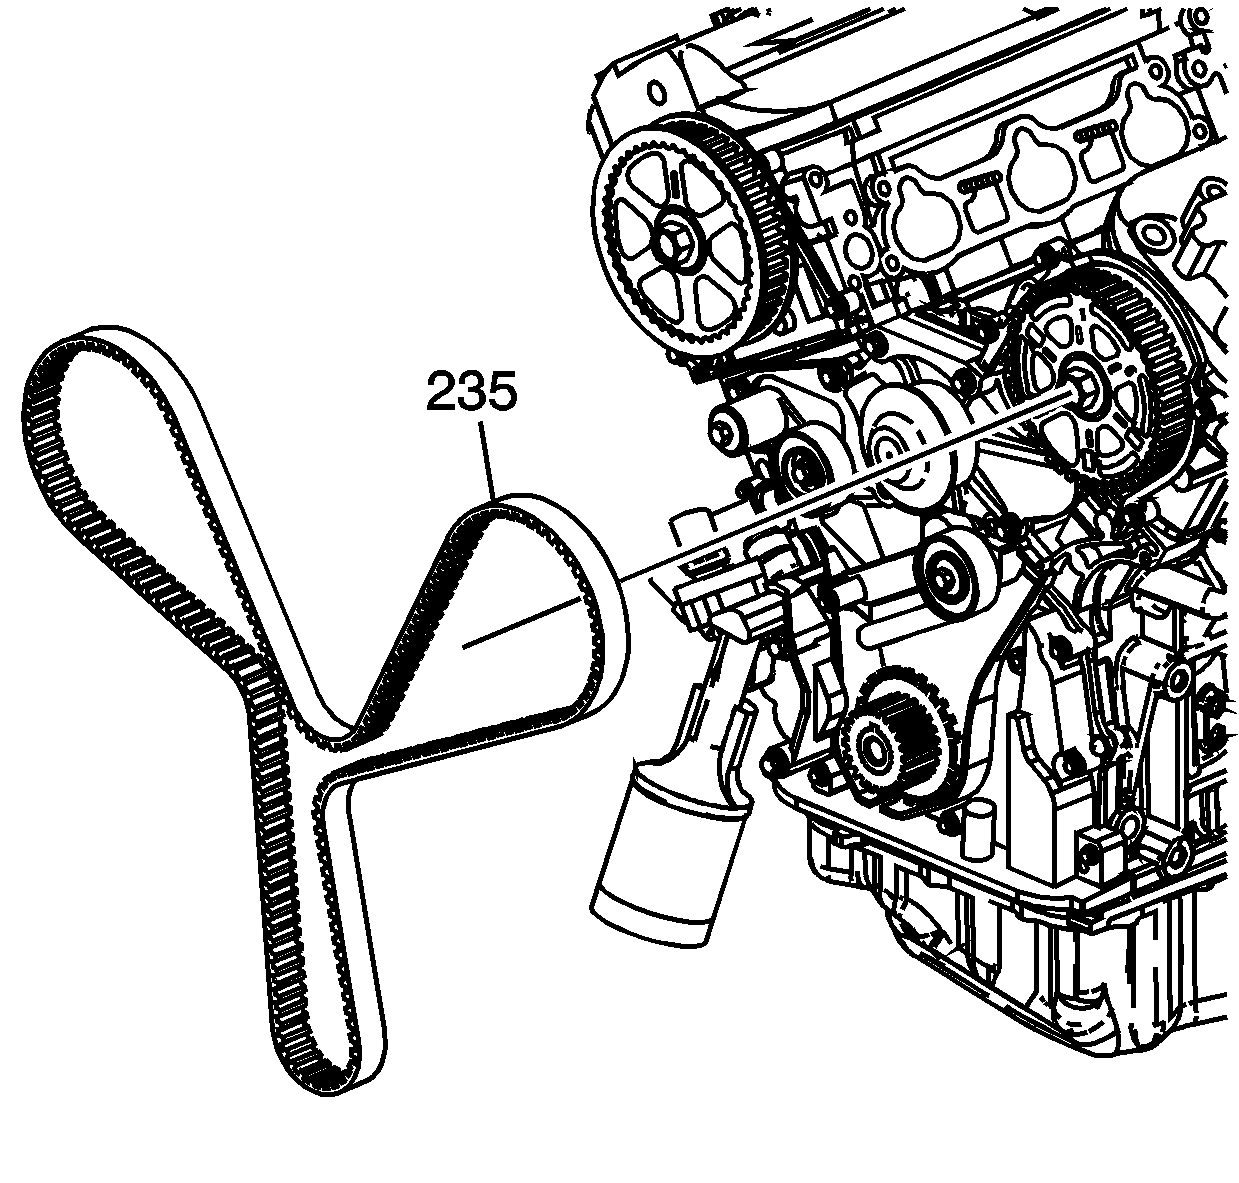 YG_1120] Saturn Aura Timing Belt Download DiagramPuti Onica Gue45 Sapebe Mohammedshrine Librar Wiring 101